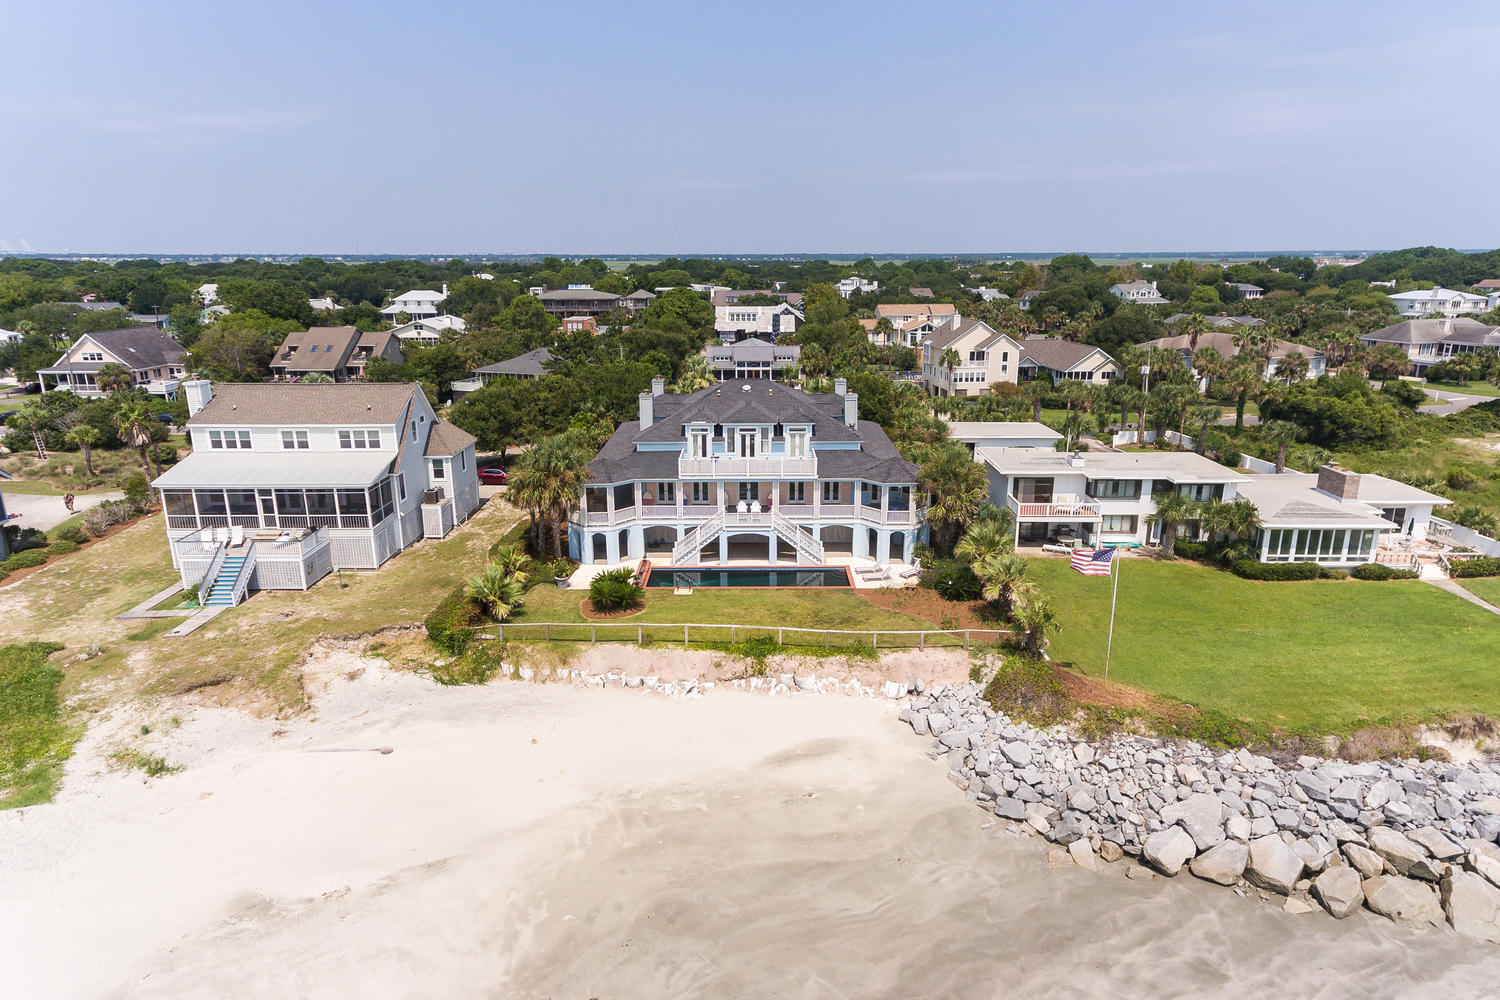 Sullivans Island Homes For Sale - 2867 Marshall, Sullivans Island, SC - 55